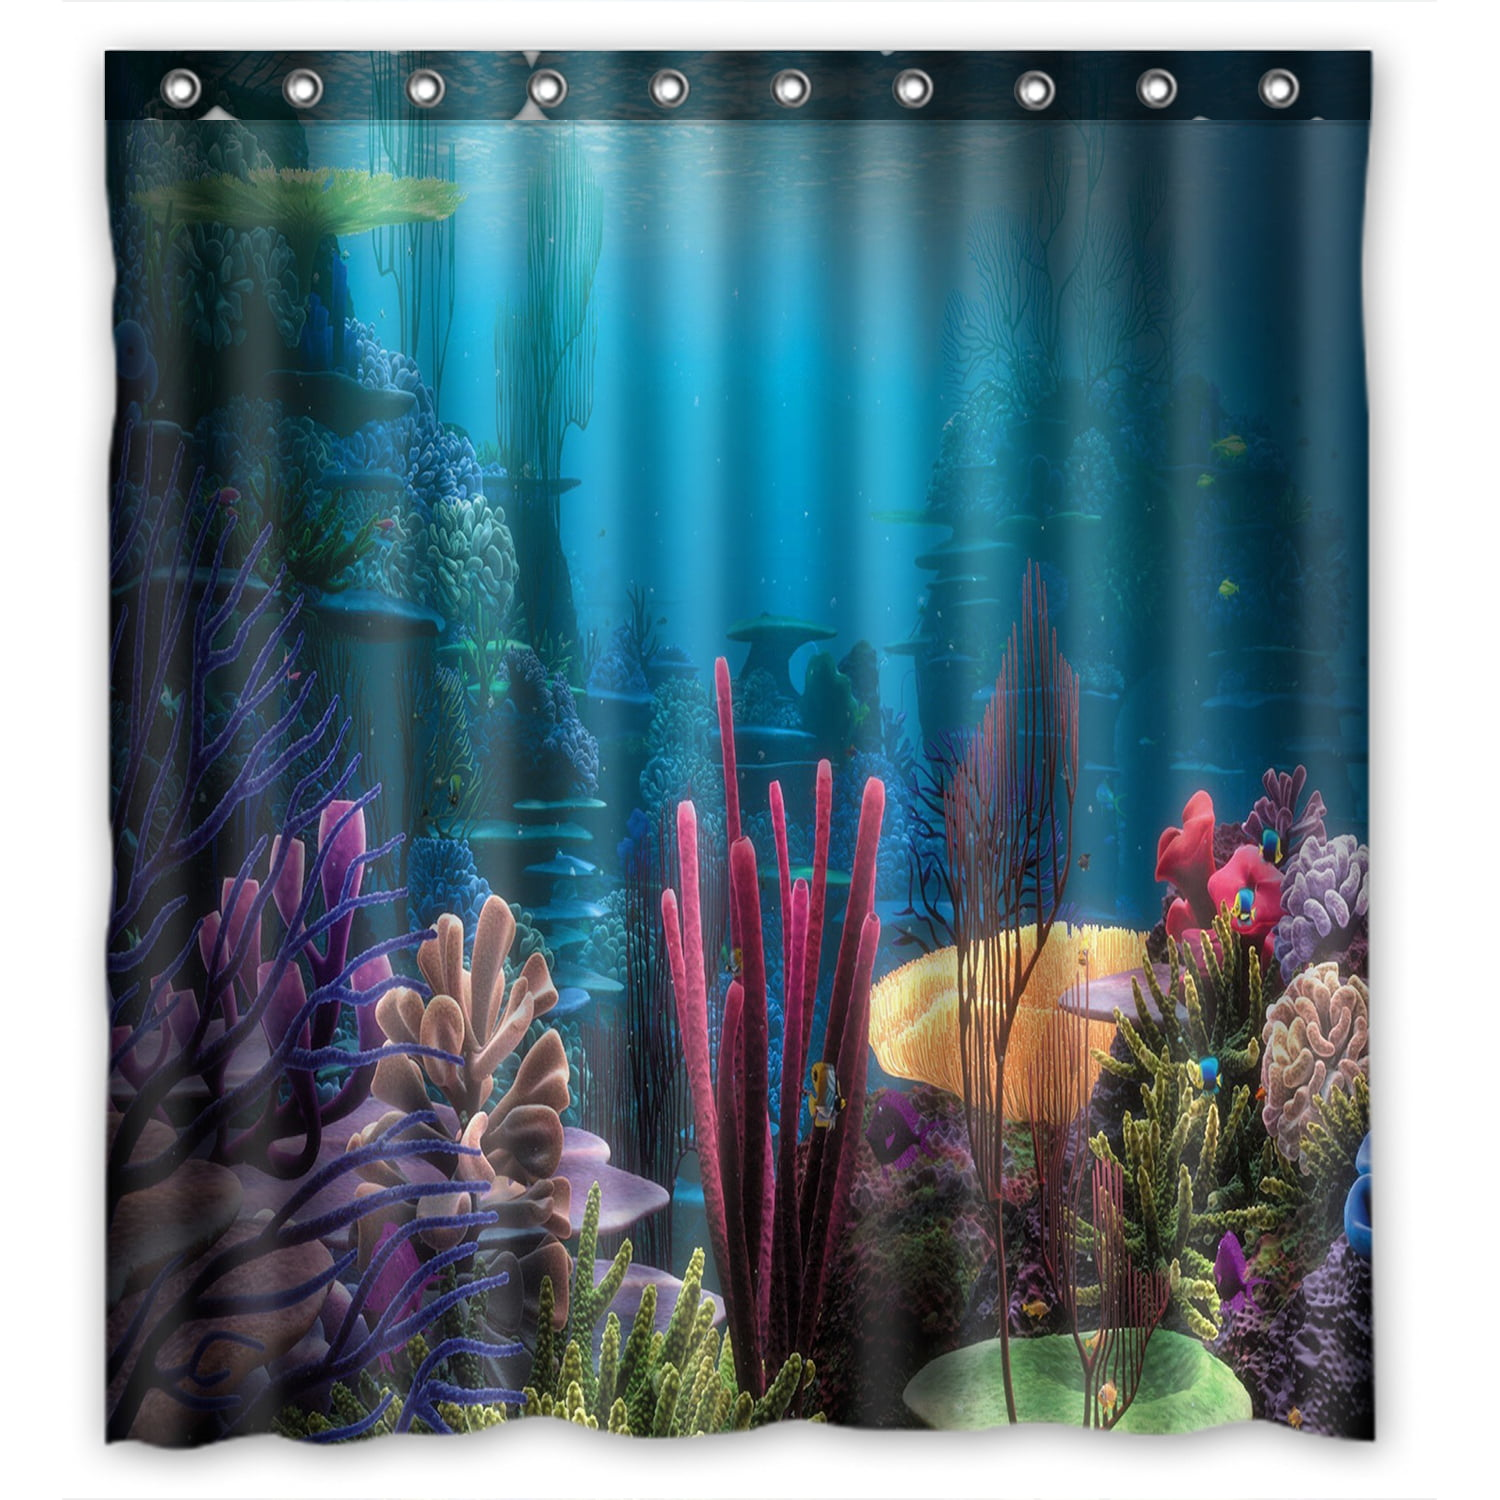 ZKGK Underwater World Sea Life Ocean Animals Fish Coral